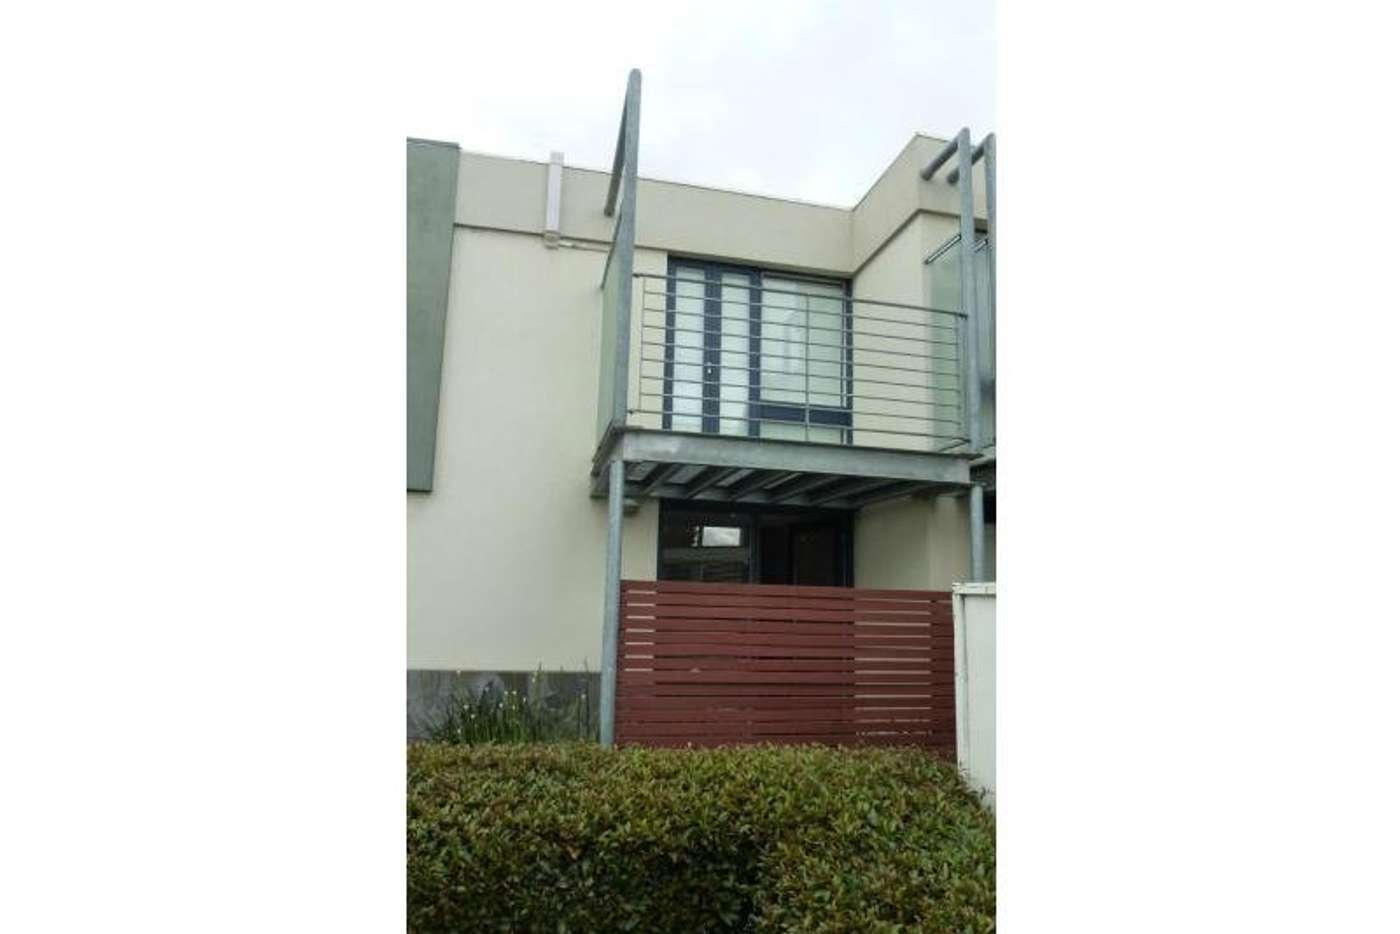 Main view of Homely townhouse listing, 3/1 Grandview Avenue, Maribyrnong VIC 3032